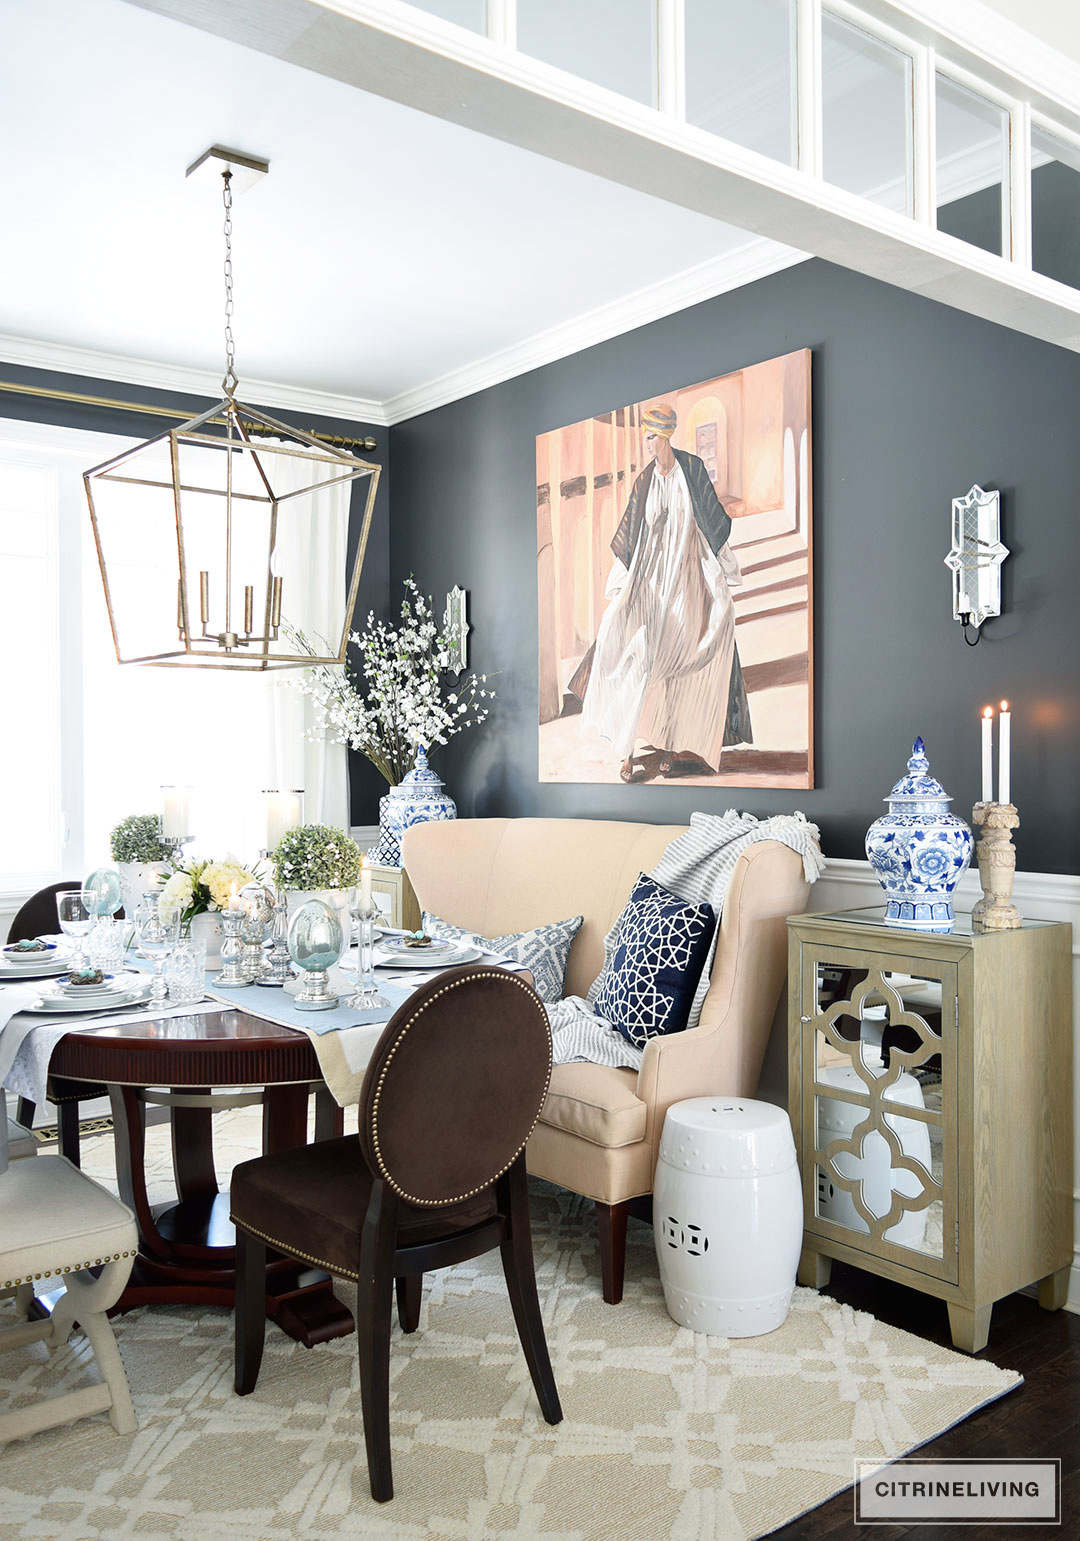 Elegant dining room with black walls and blue and white chinoiserie accents. A simple Easter or Spring tablescape with metallic accents adds sophistication.